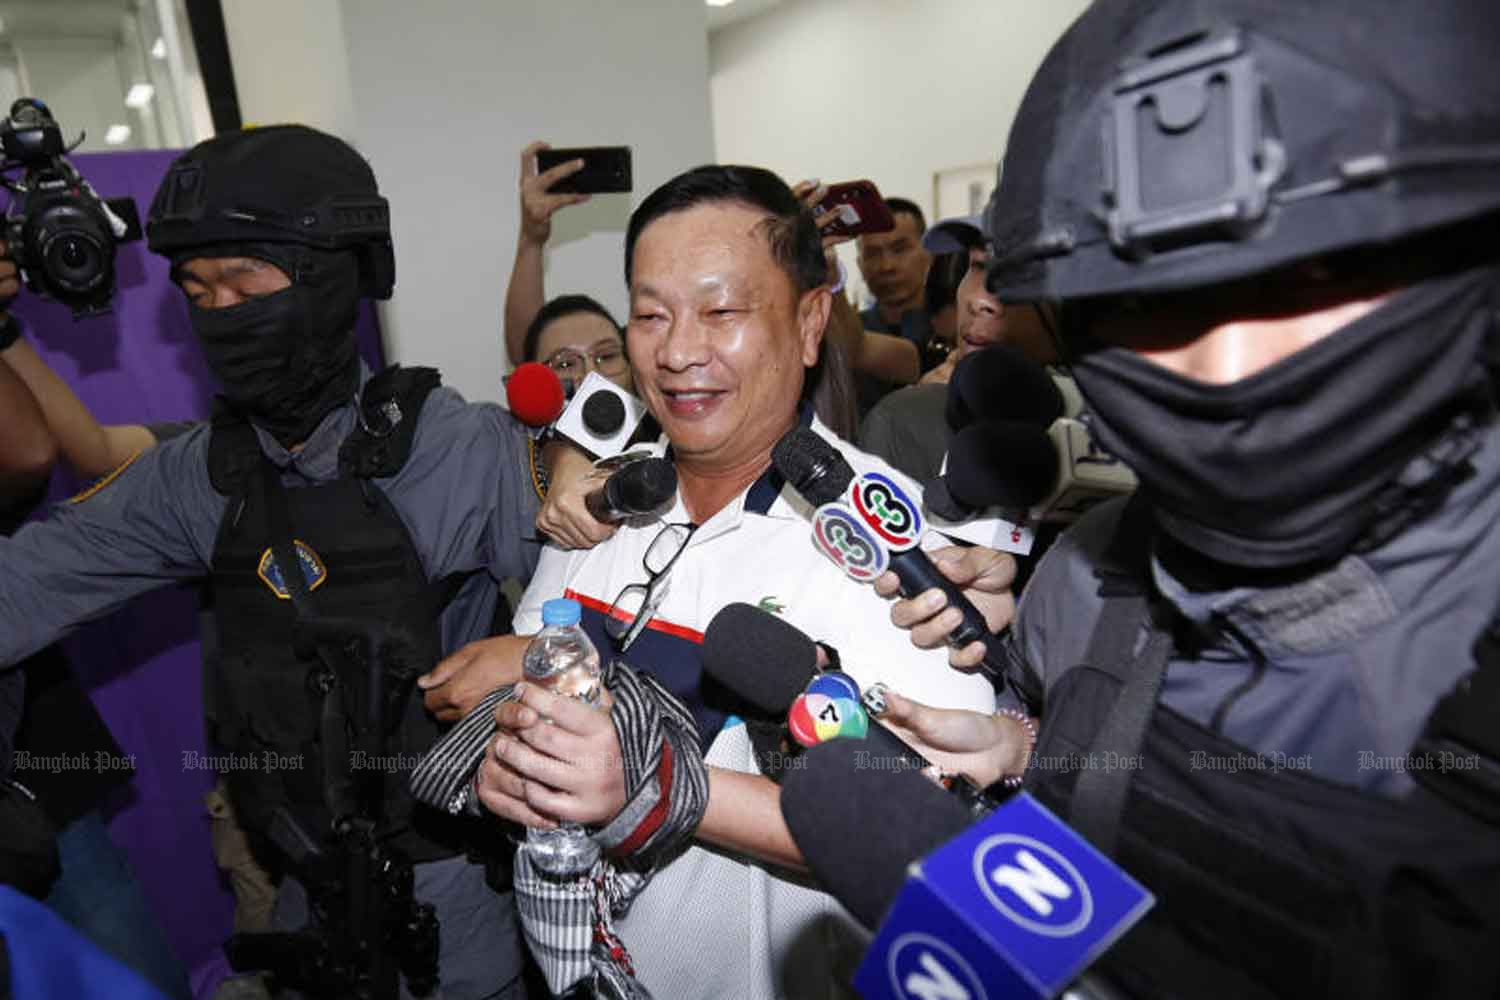 Former deputy commerce minister Banyin Tangpakorn in police custody after being arrested for the murder of the judge's brother in February. (Photo: Pattarapong Chatpattarasill)